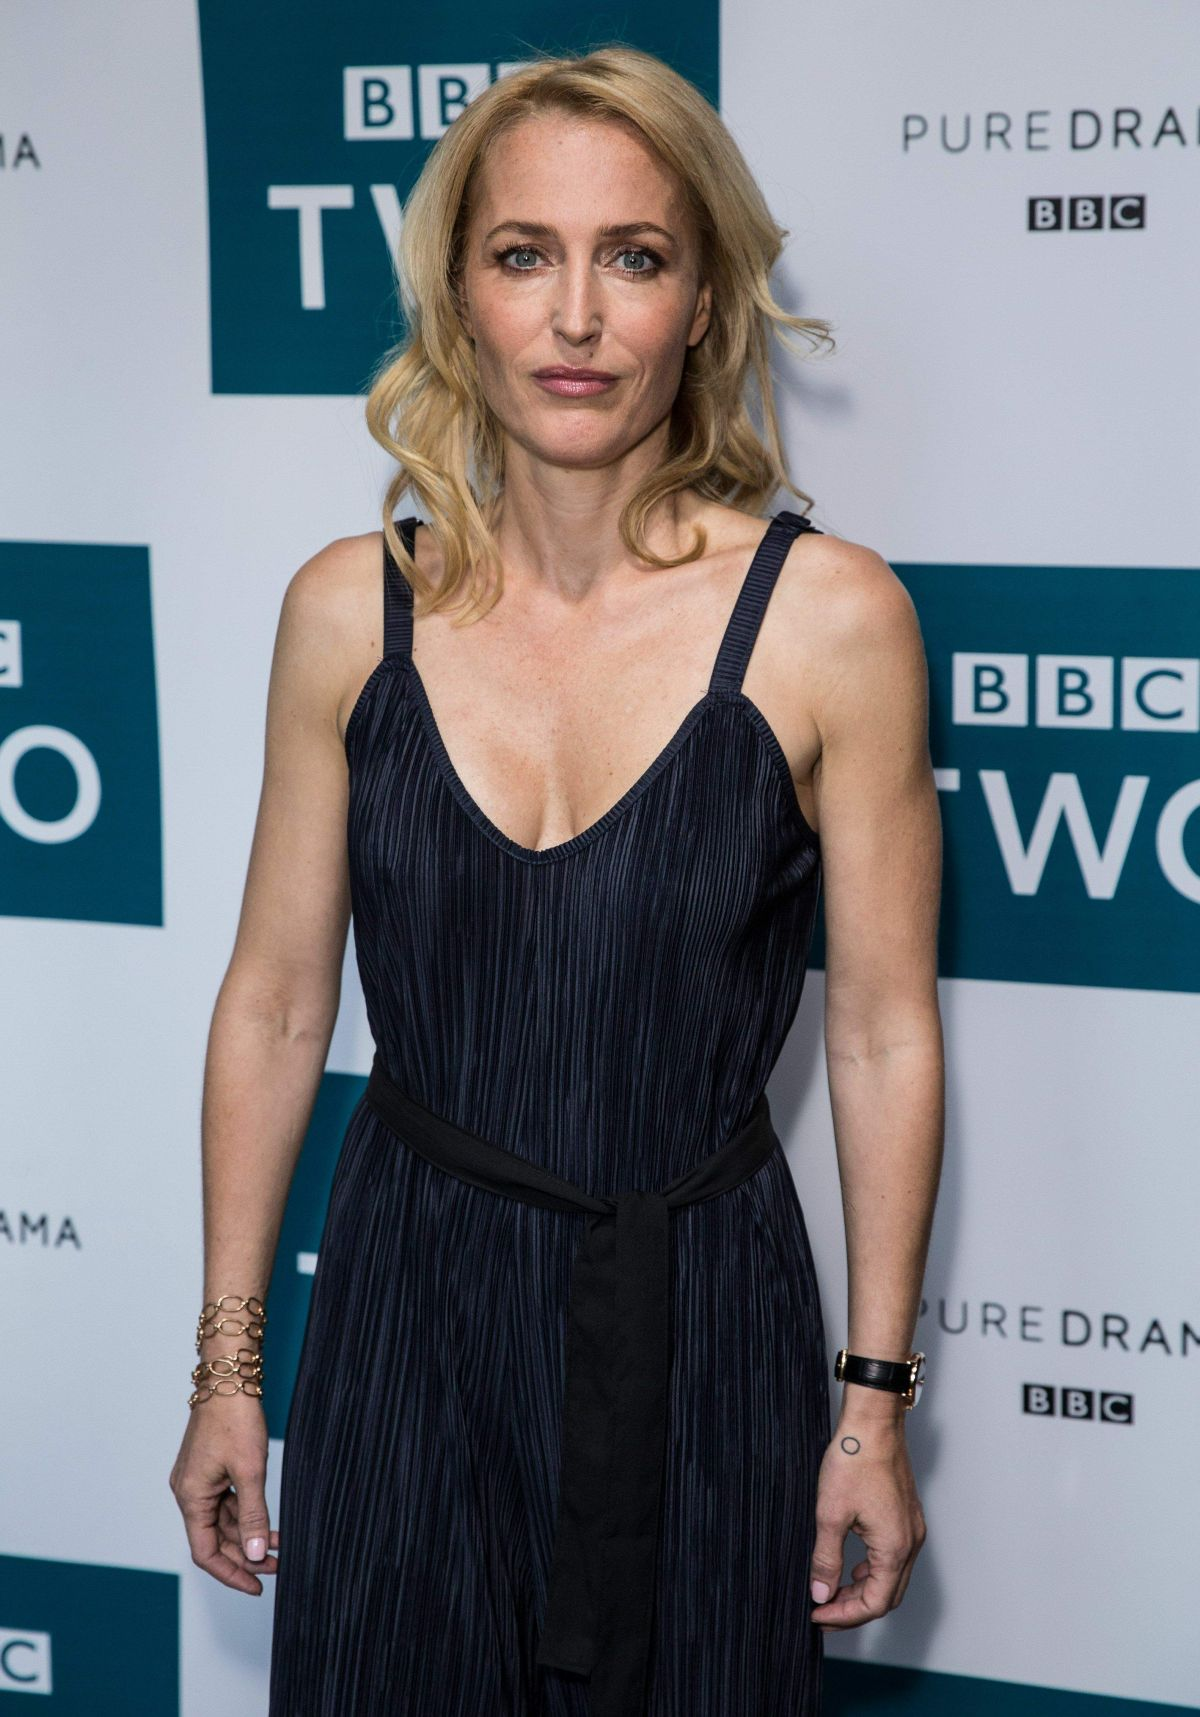 Gillian Anderson At 'The Fall' Series 3 photocall, London, UK - Celebzz